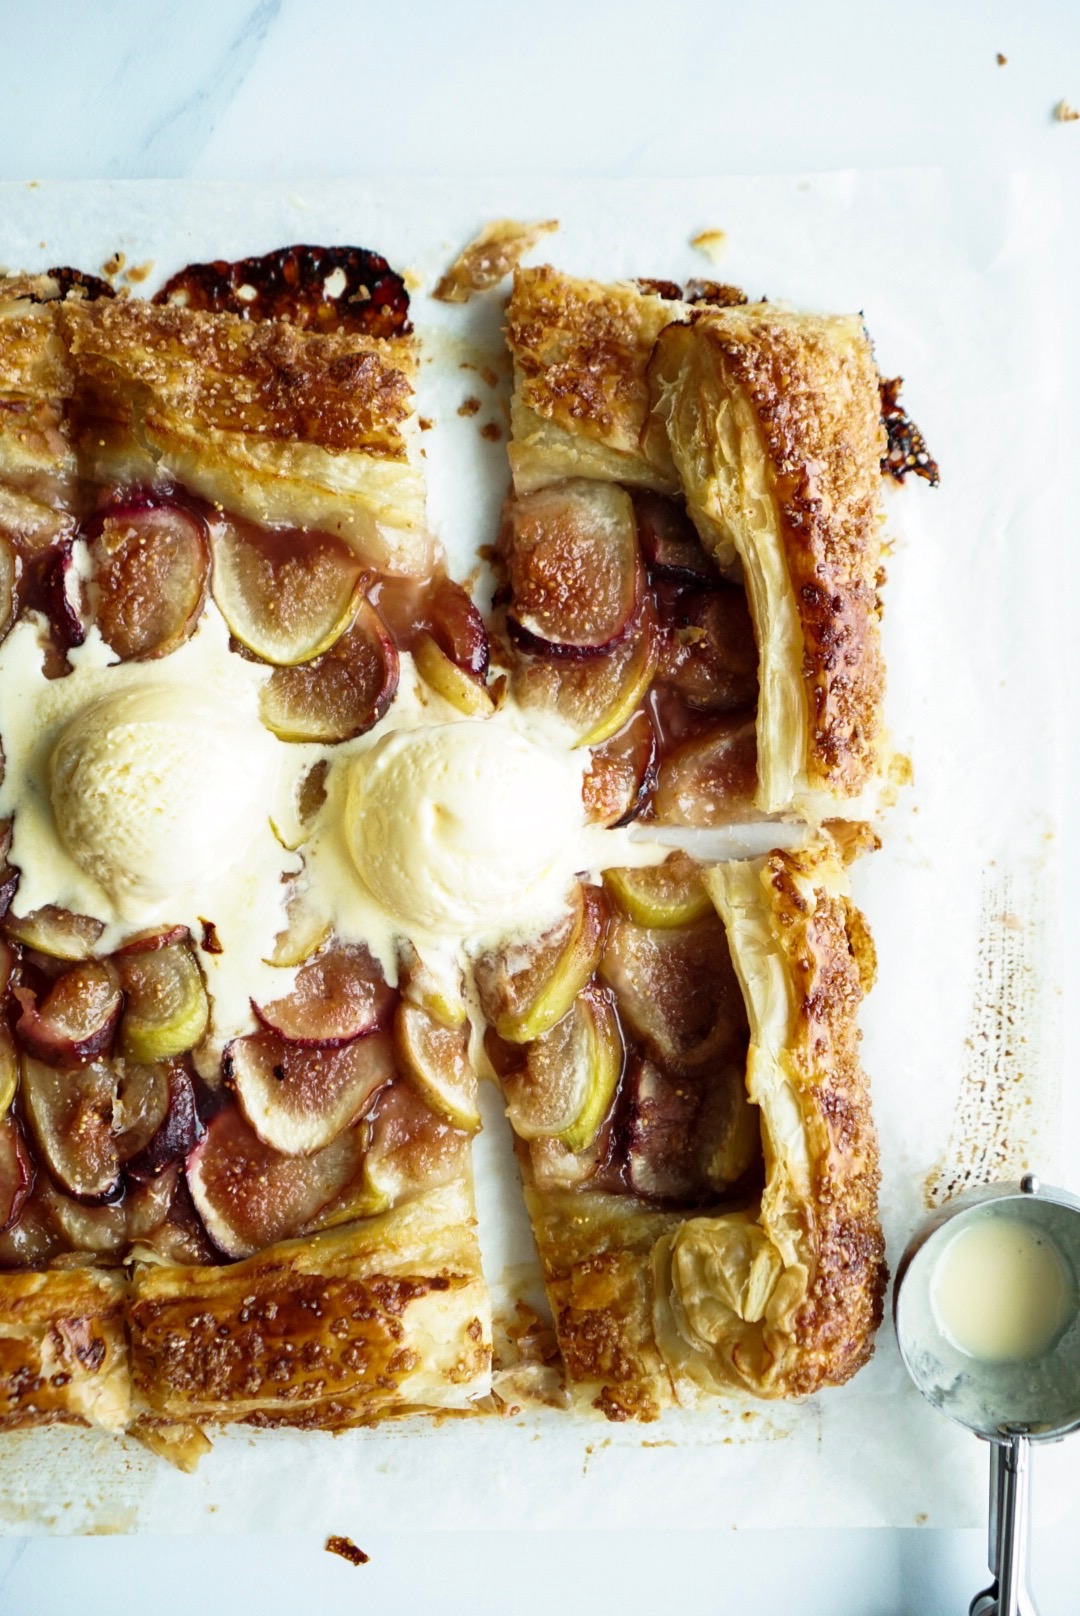 FIG HONEY EARL GREY GALETTE